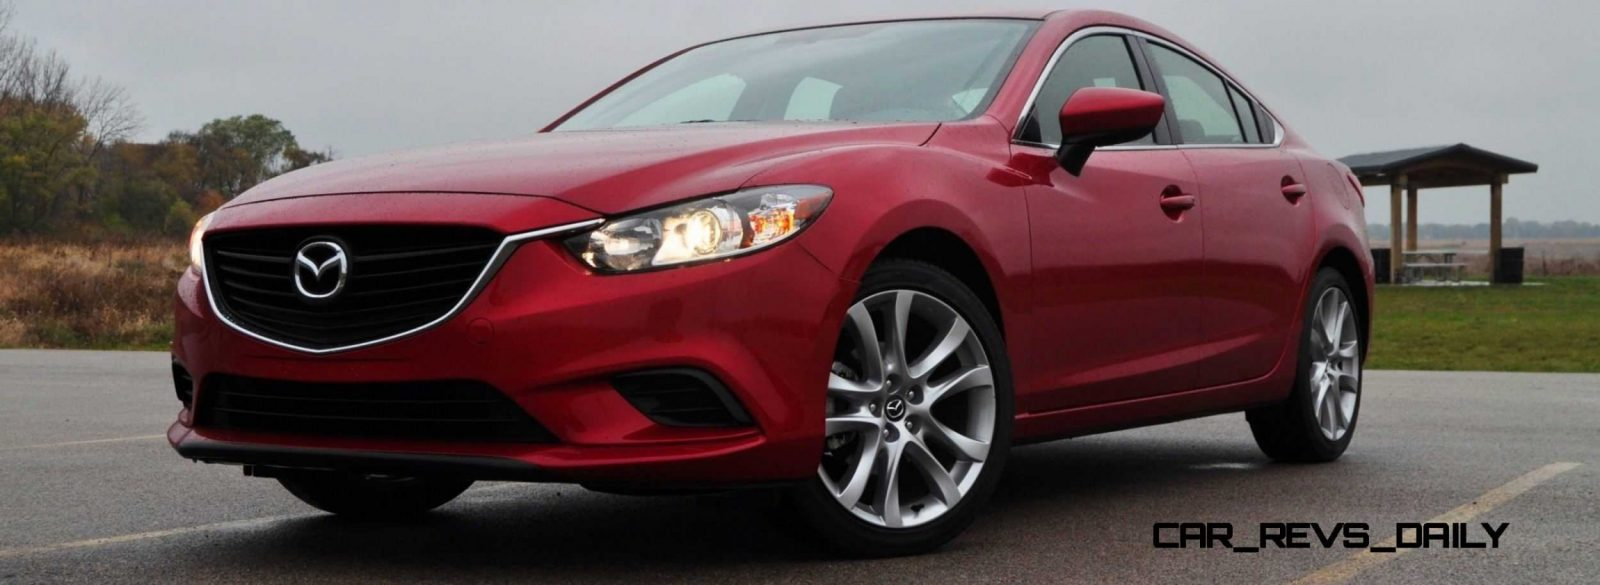 2014 Mazda6 i Touring - Video Summary + 40 High-Res Images4